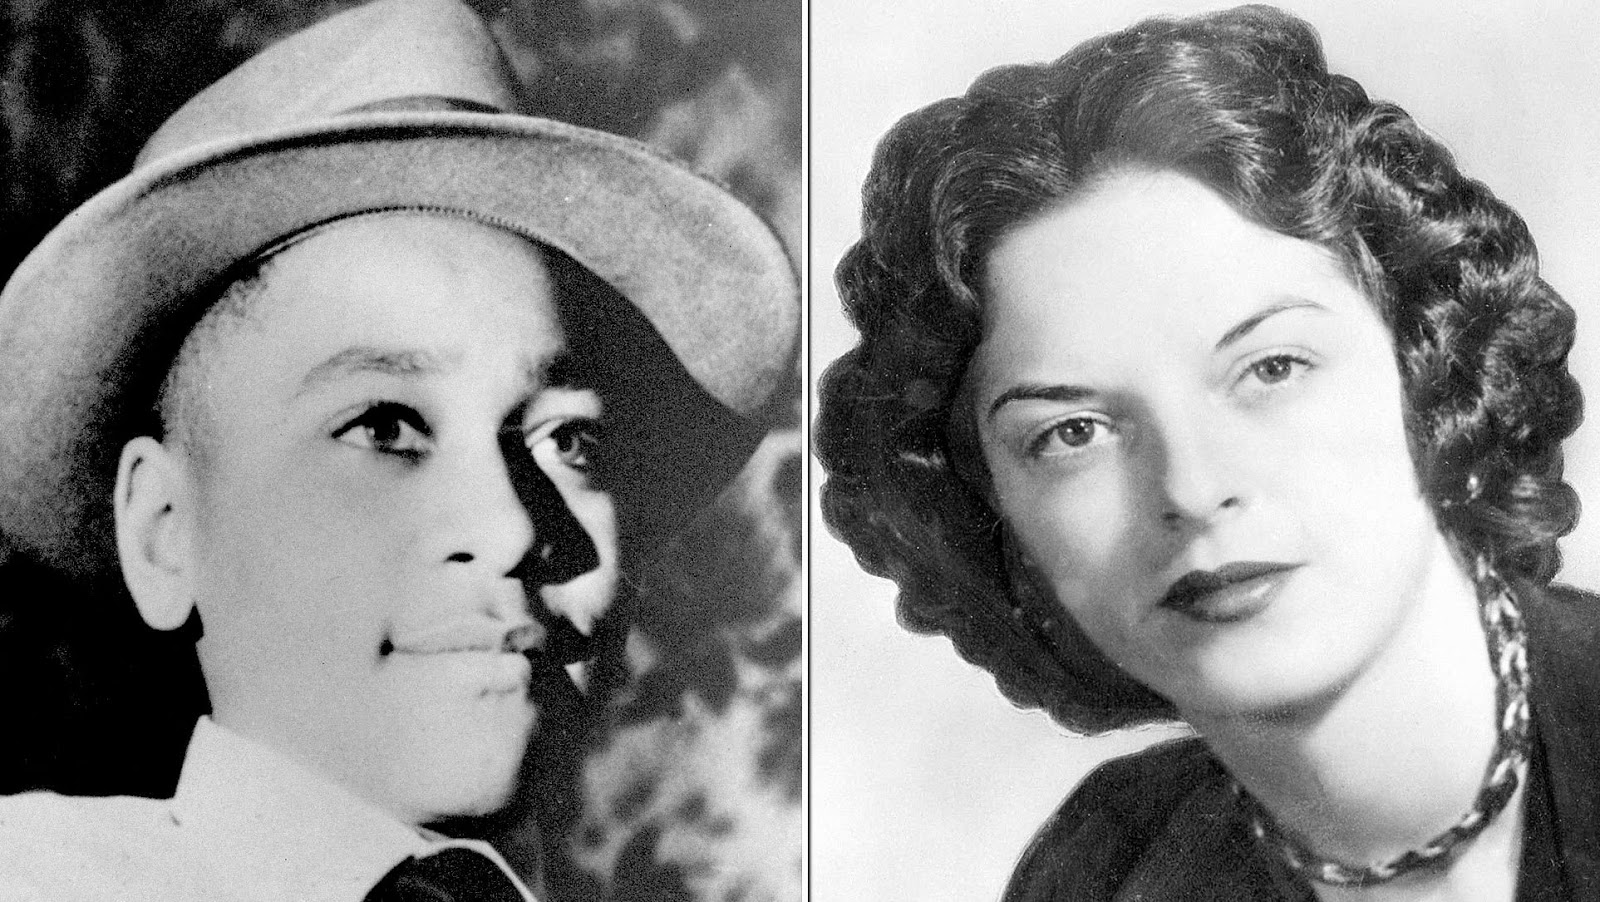 Justice Dept. Reopens Emmett Till Murder Case That Helped Inspire Civil Rights Movement